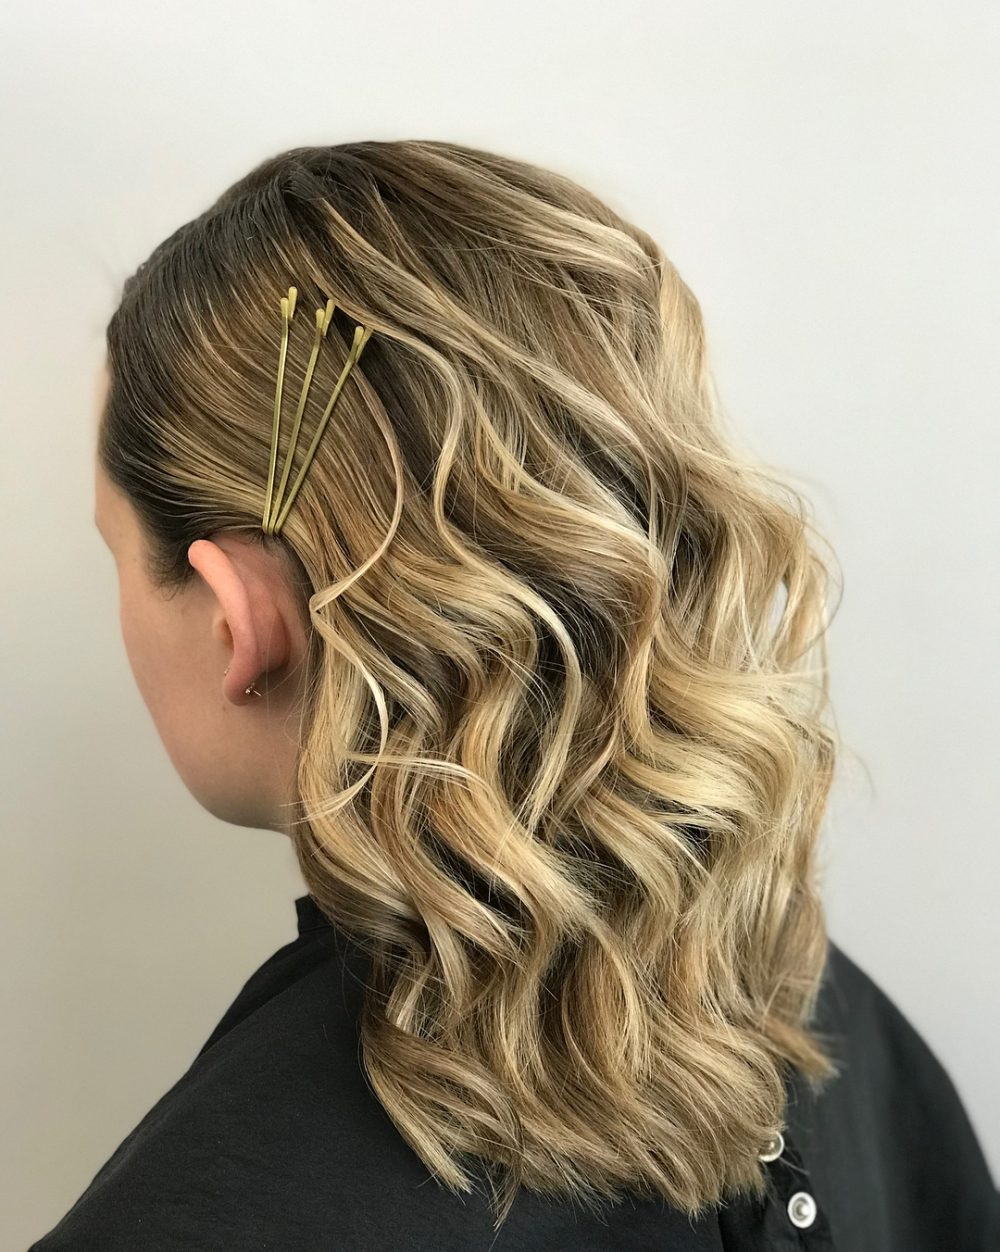 Formal Bobby Pins hairstyle